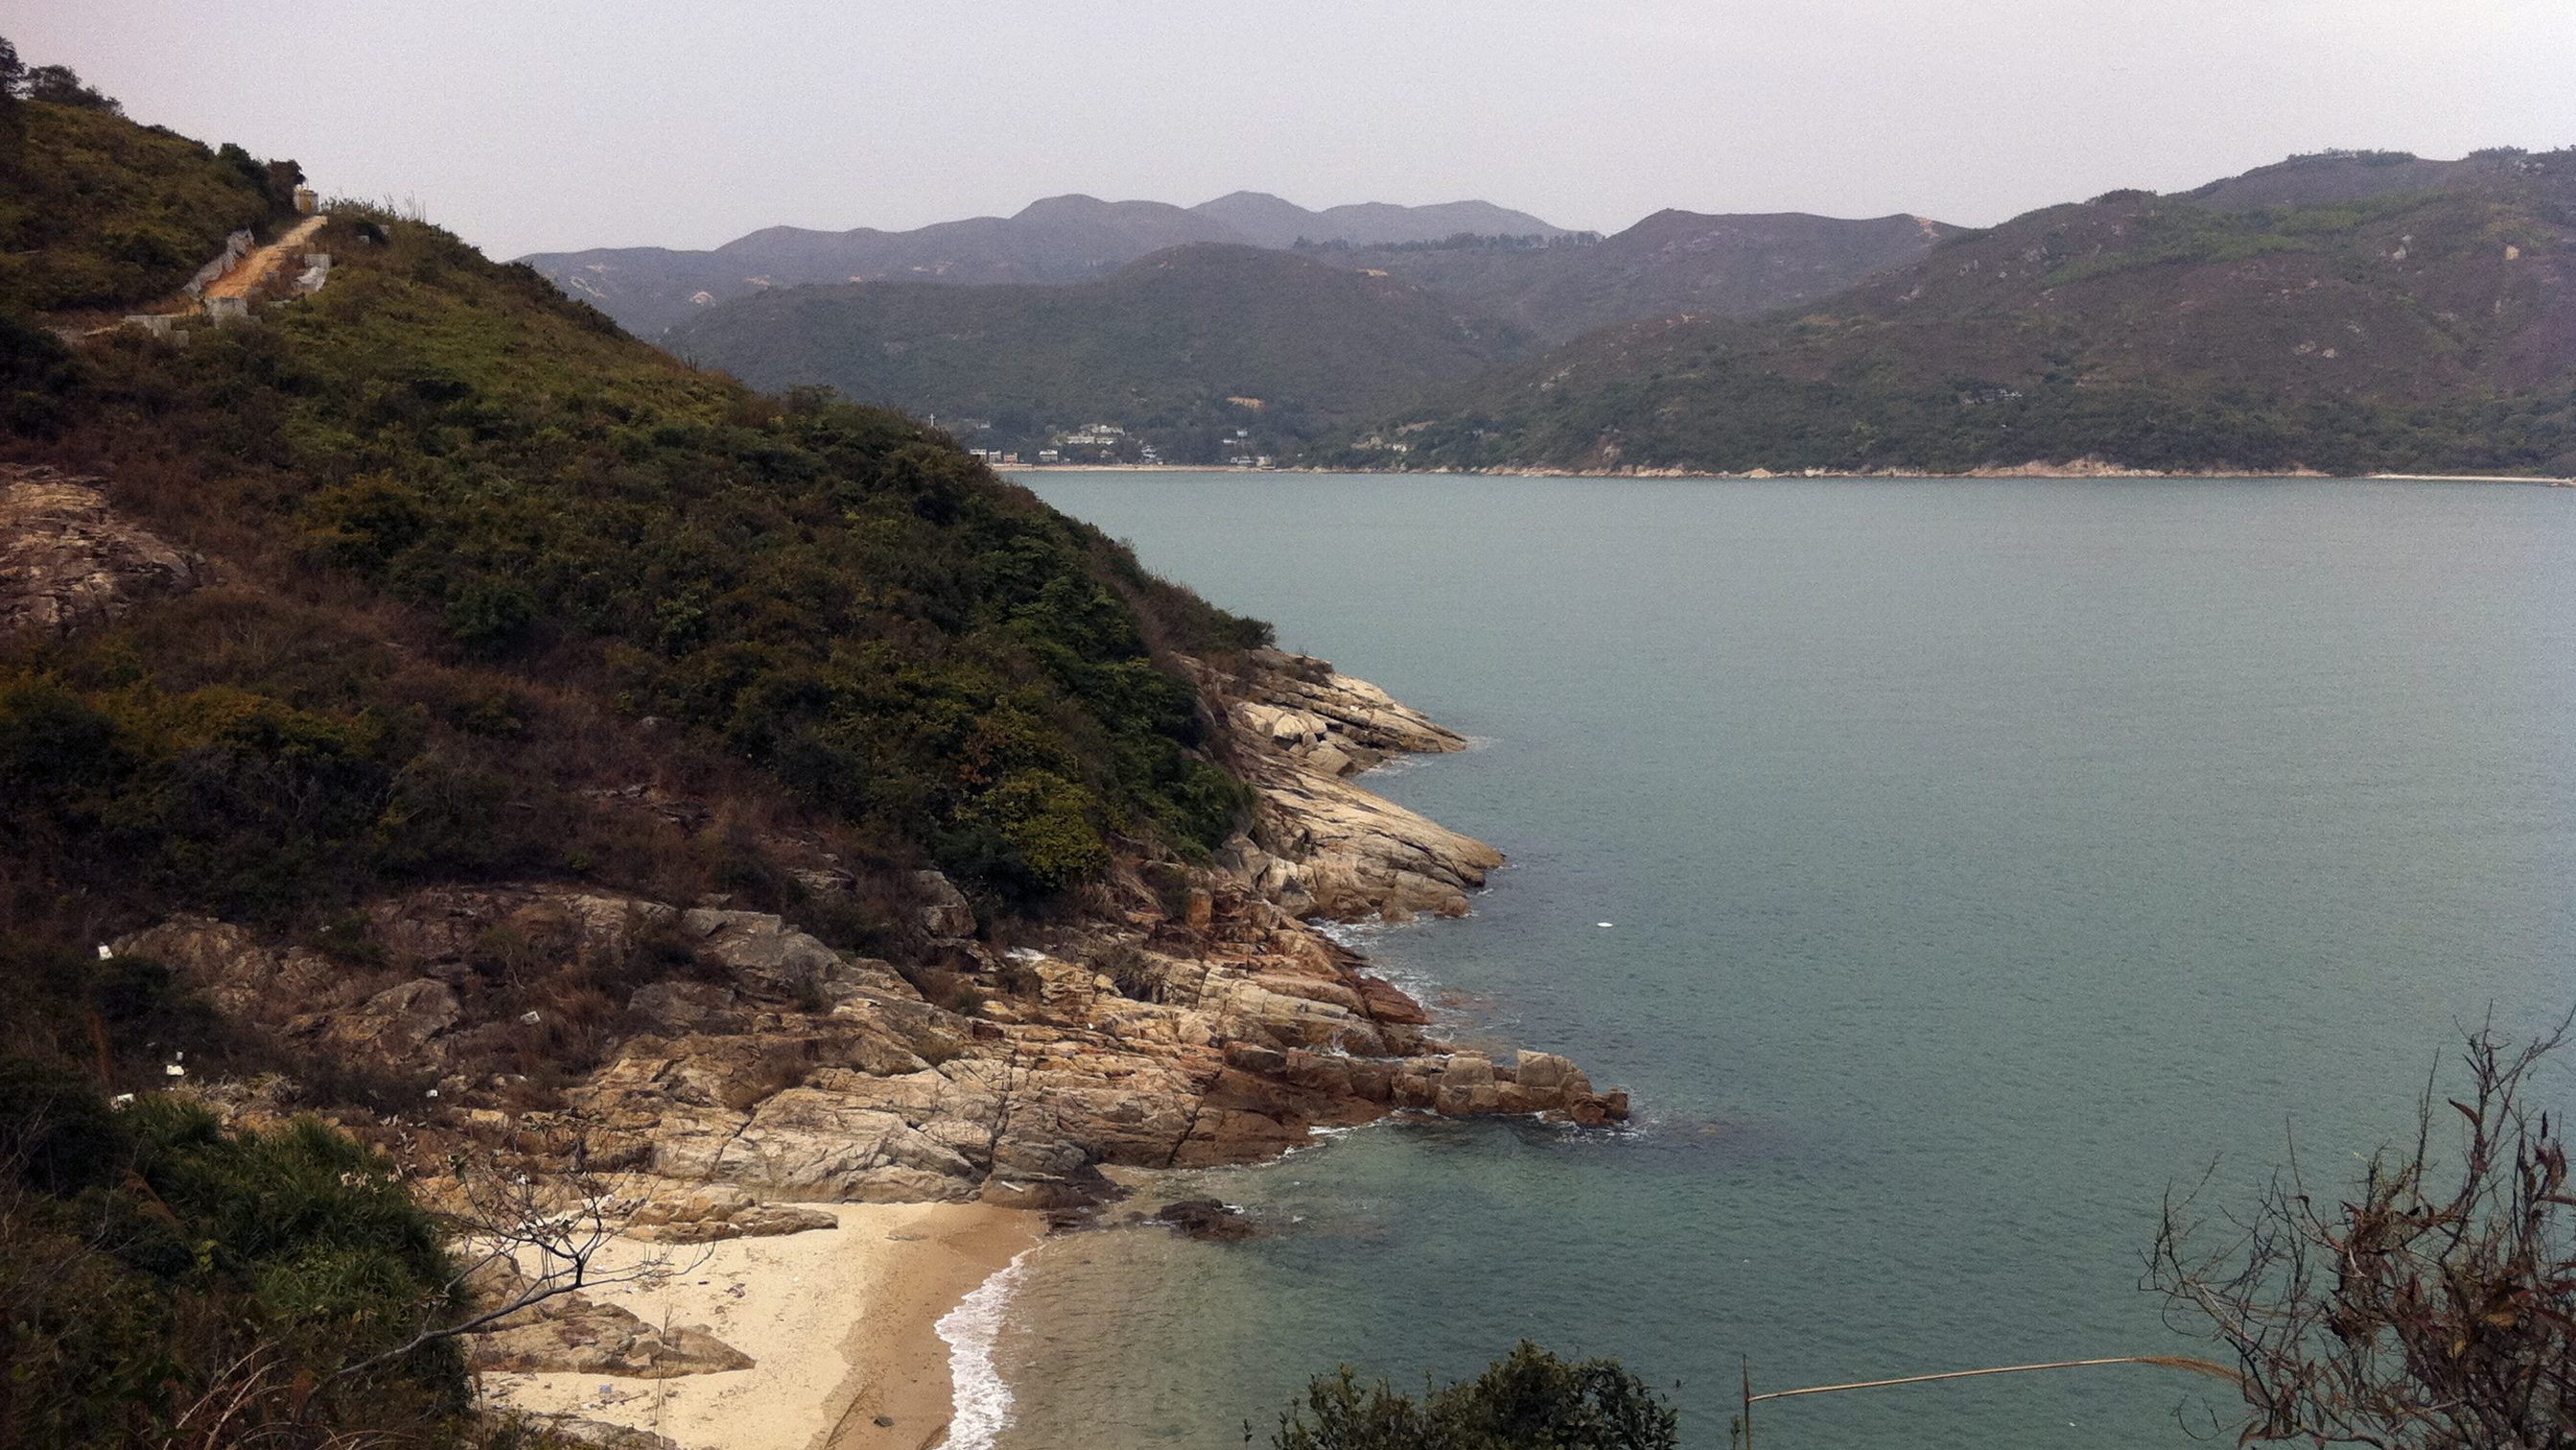 This March 2011 photo shows a view of Pui O Bay from a lookout point along the Lantau Trail on Lantau Island, about an hour by ferry from Hong Kong. Pui O makes a good starting point for further exploration of Lantau Island, with designated hiking trails, a large monastery, a fishing village, and a cable car to the Big Buddha available.    (AP Photo/Jessica Glazer)